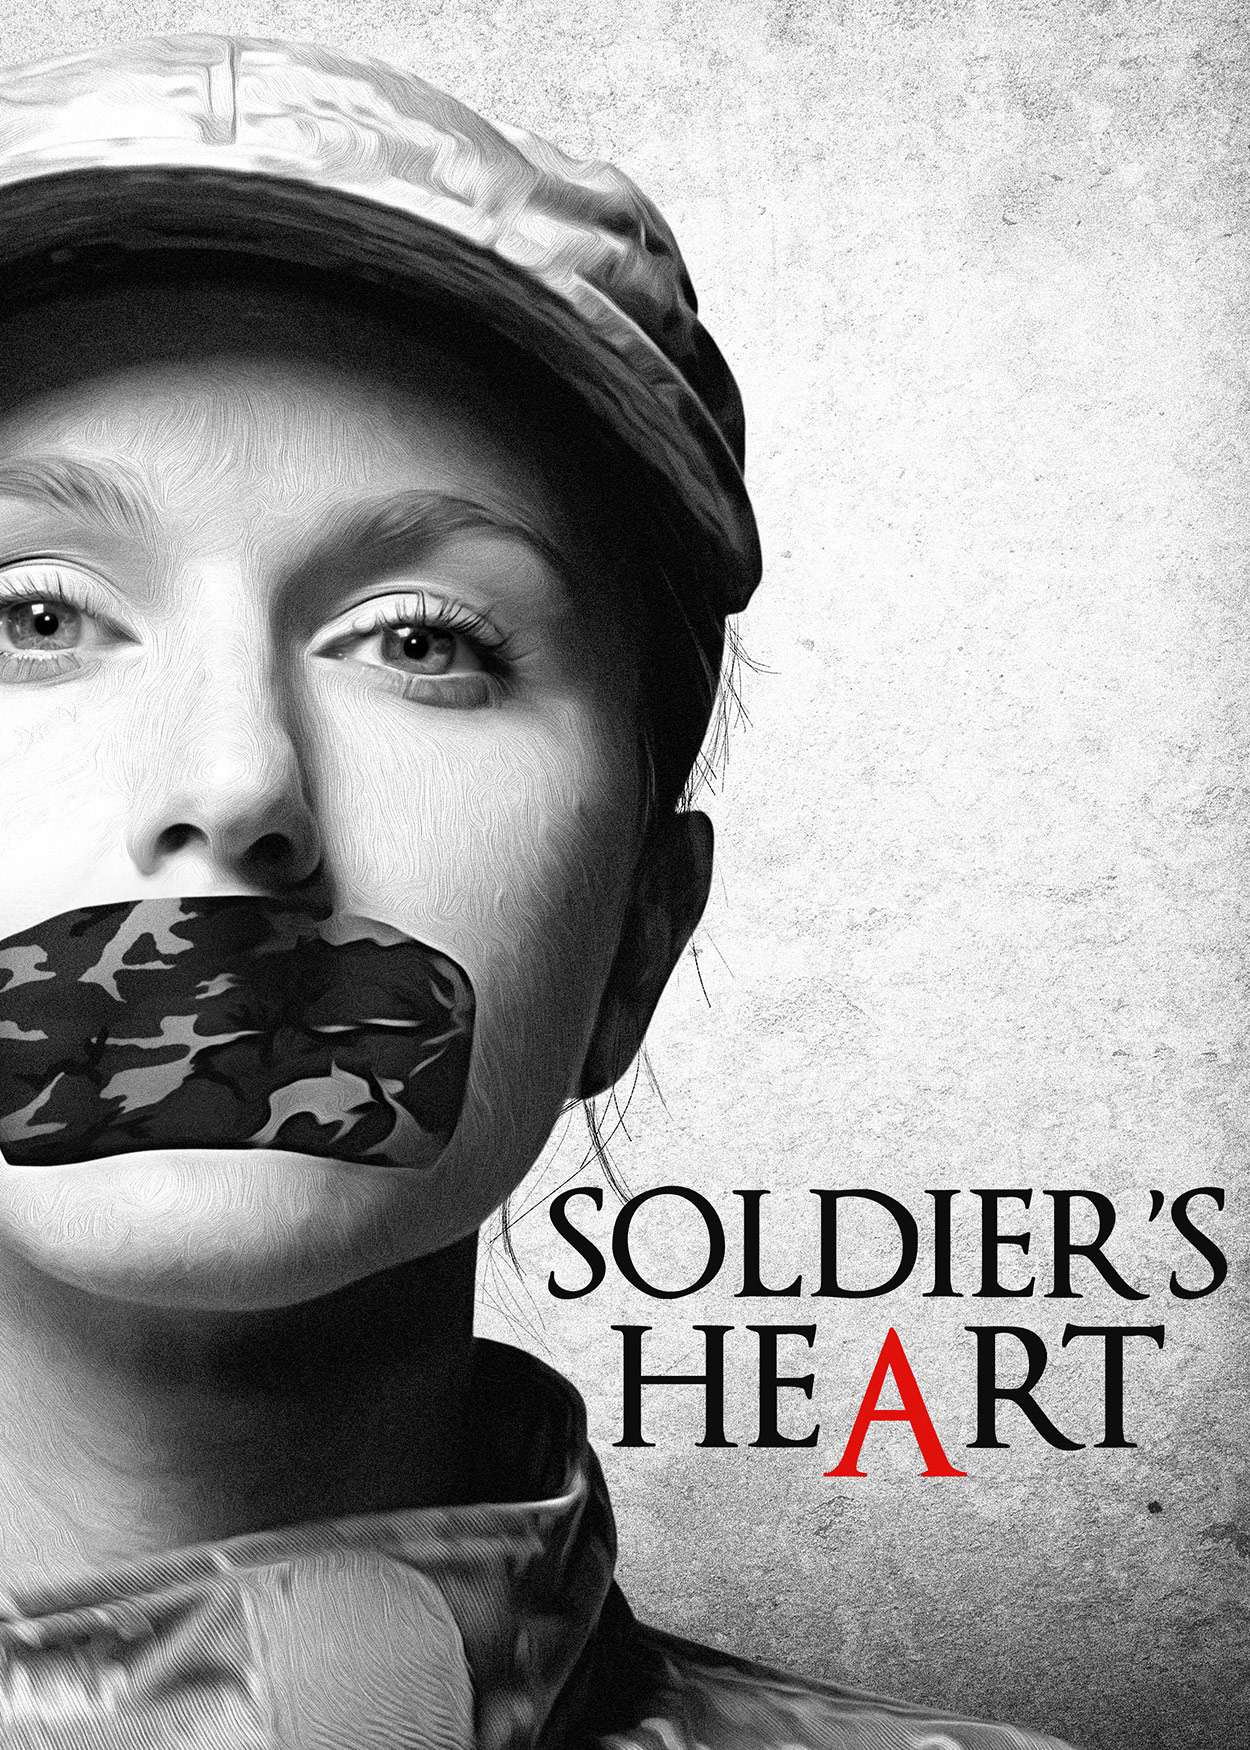 Key Art from Soldier's Heart (2014). A black & white close-up photo of a woman's face. She is wearing an Army unform cap. There is a camoflauge-print sticker over her mouth.